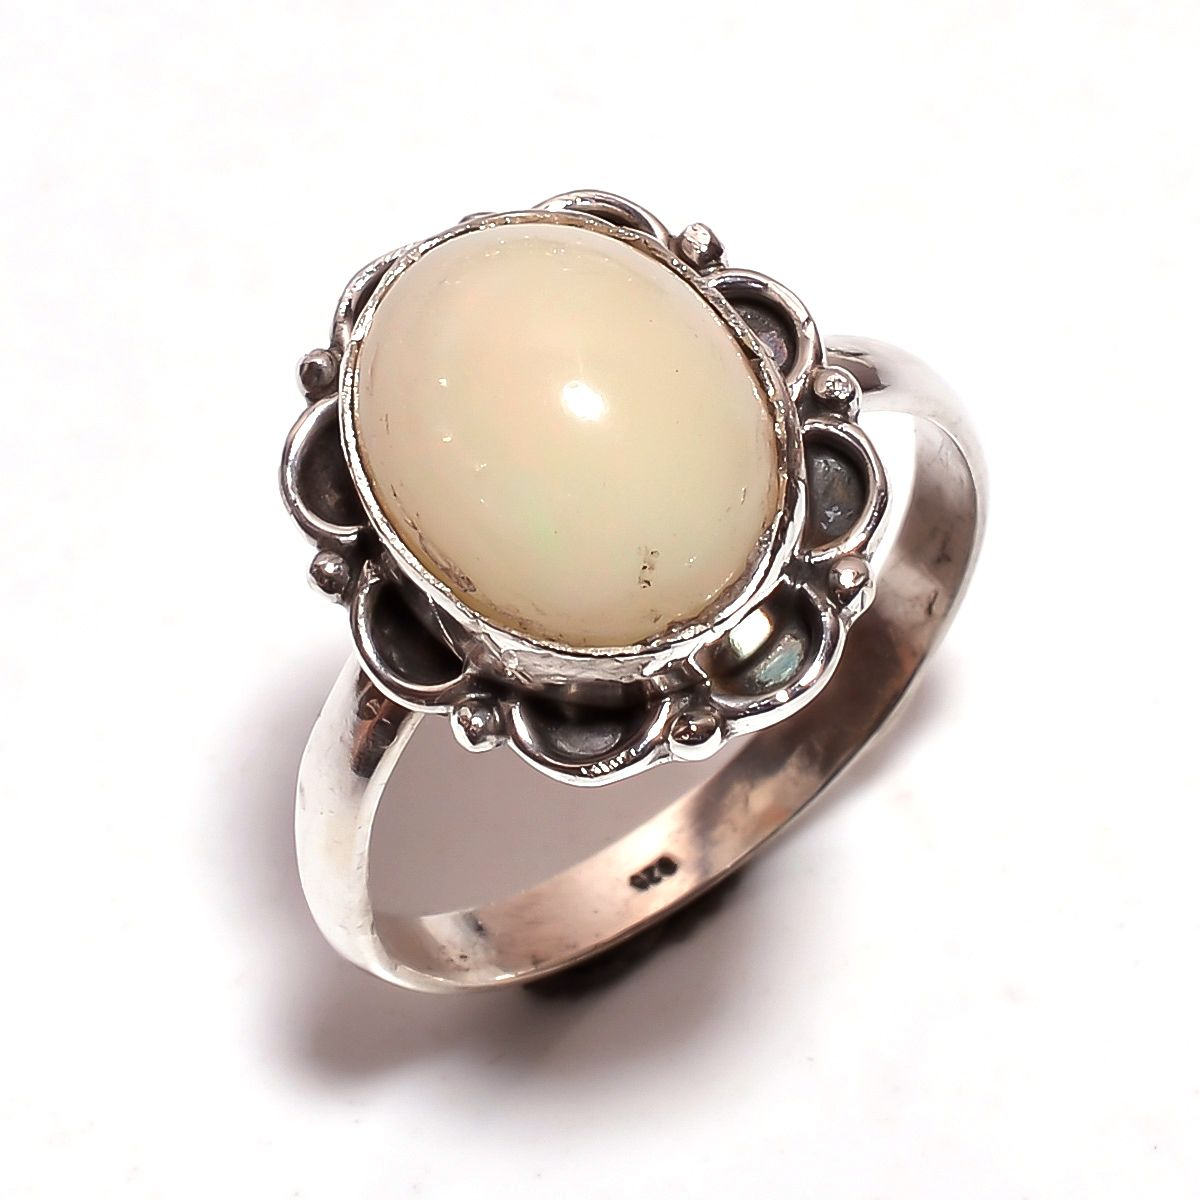 Ethiopian Opal Gemstone 925 Sterling Silver Ring Size 10.25